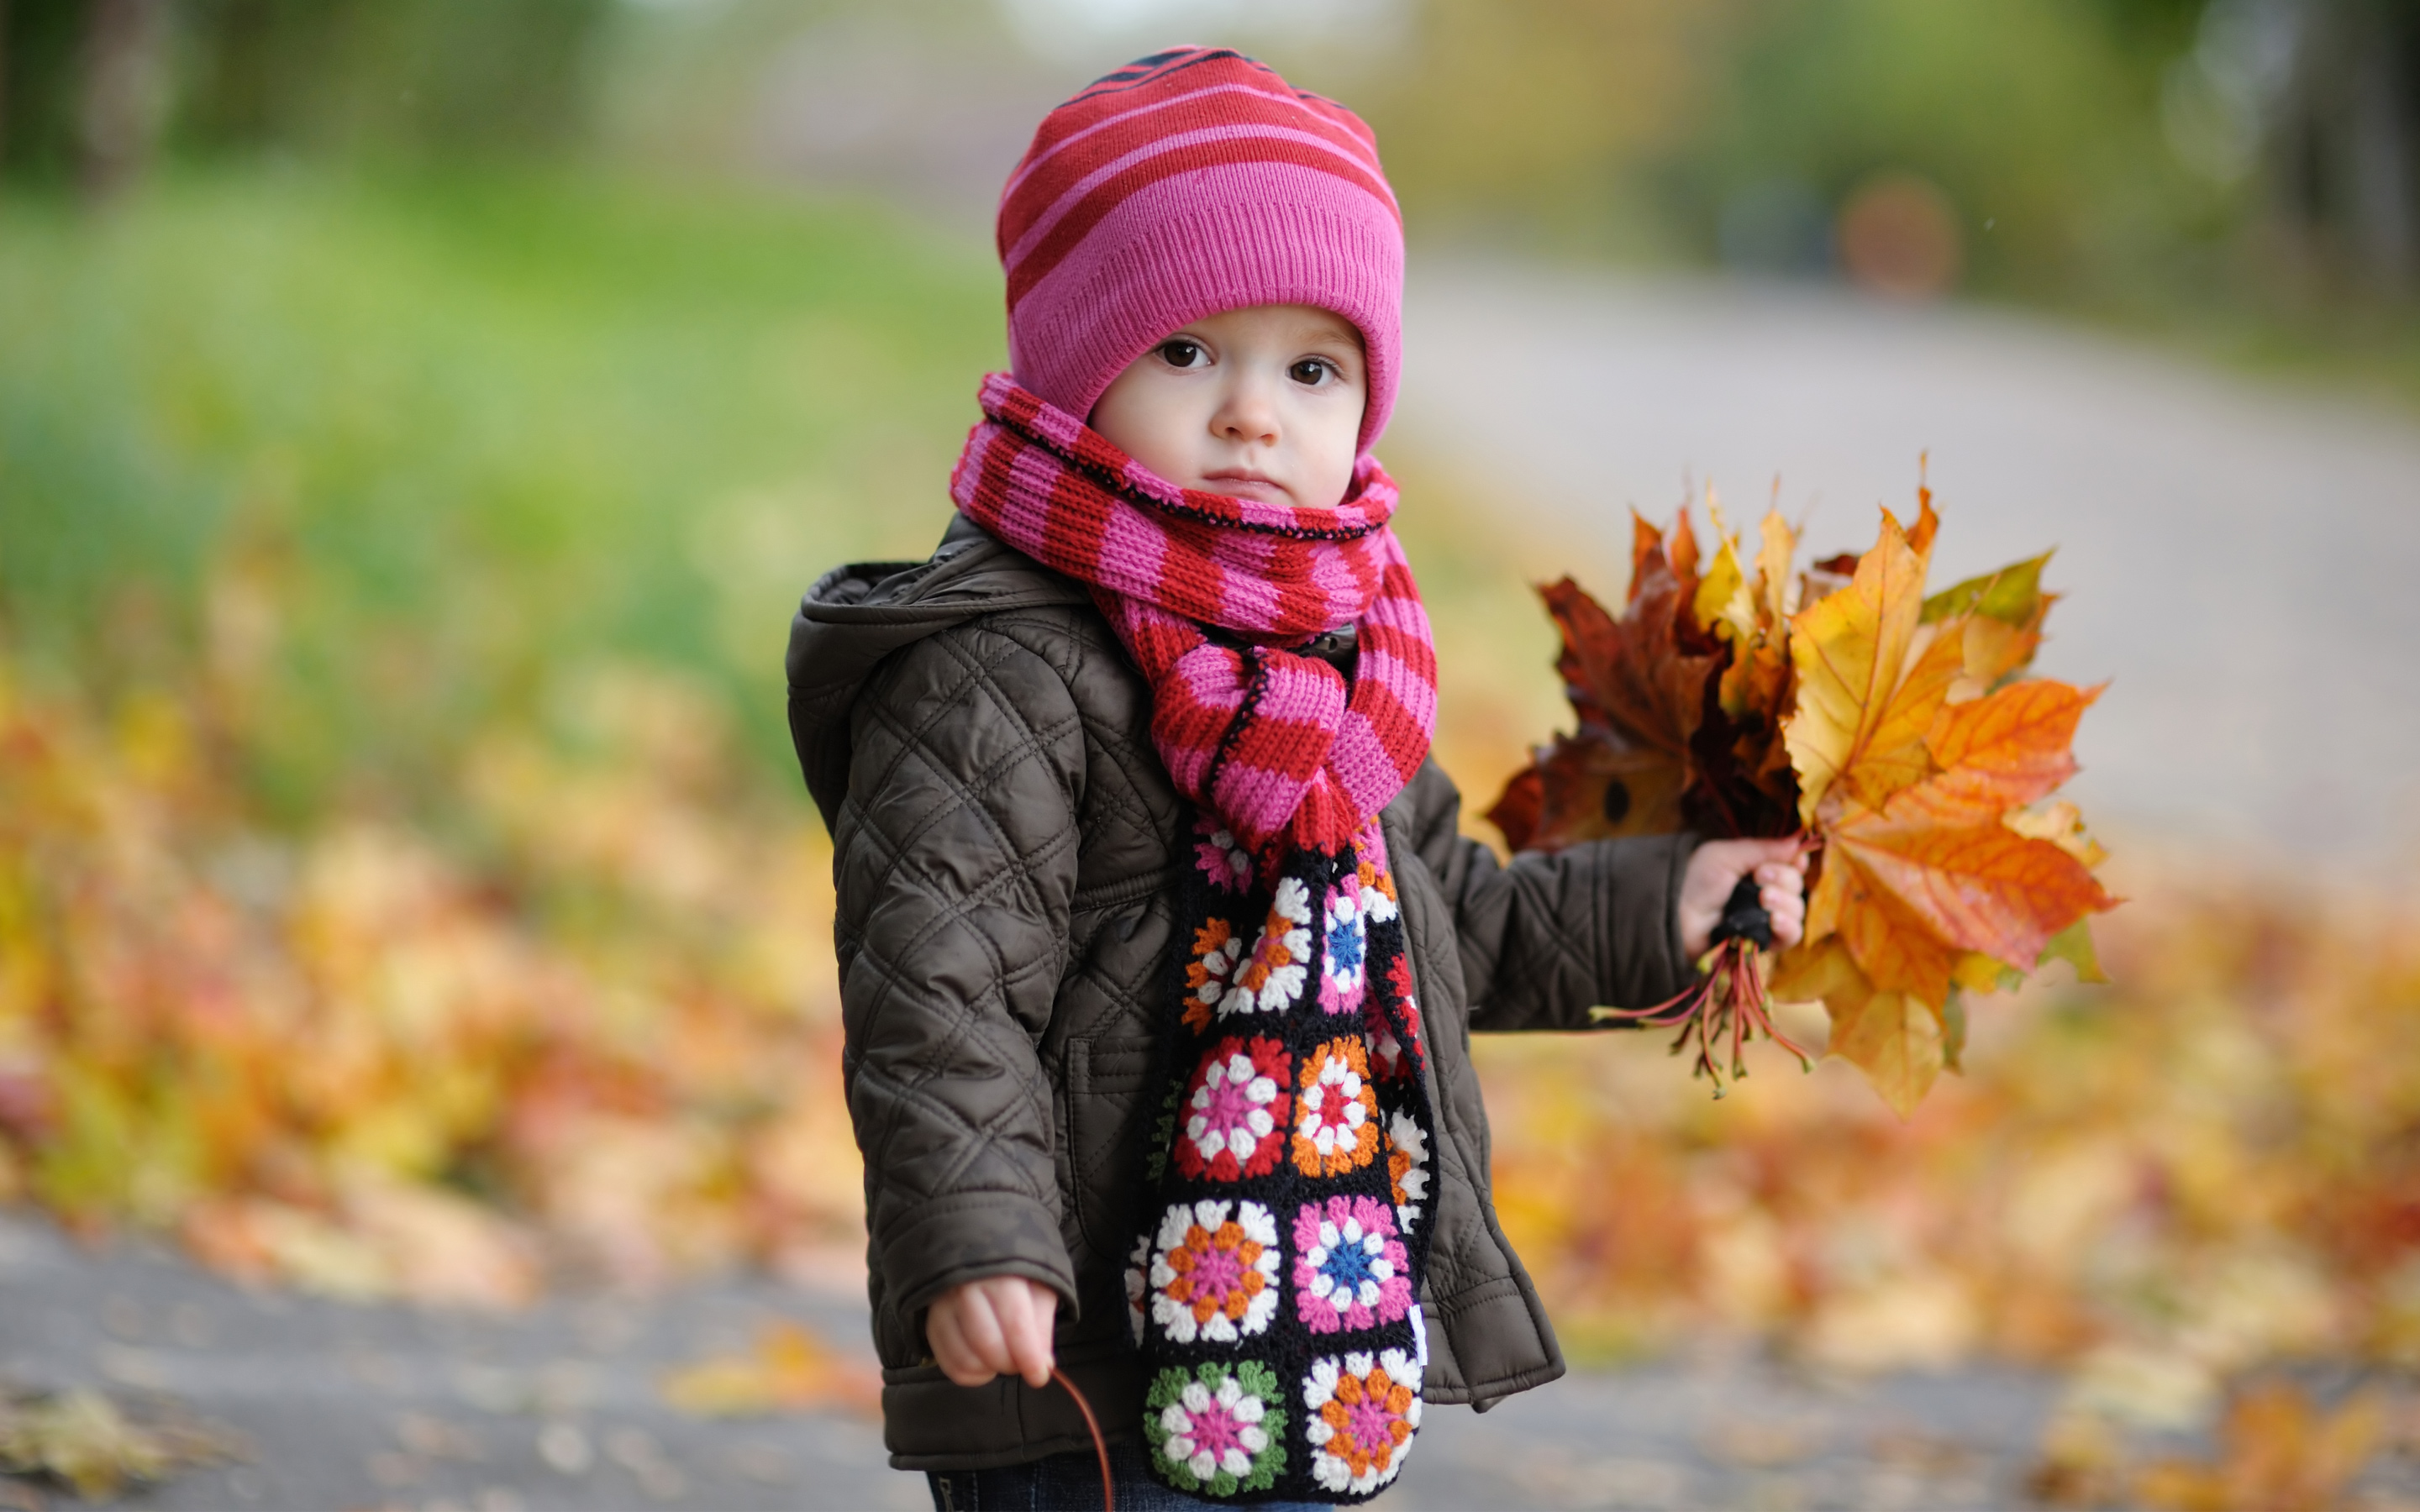 Cute Baby in Autumn Wallpapers HD Wallpapers 2560x1600